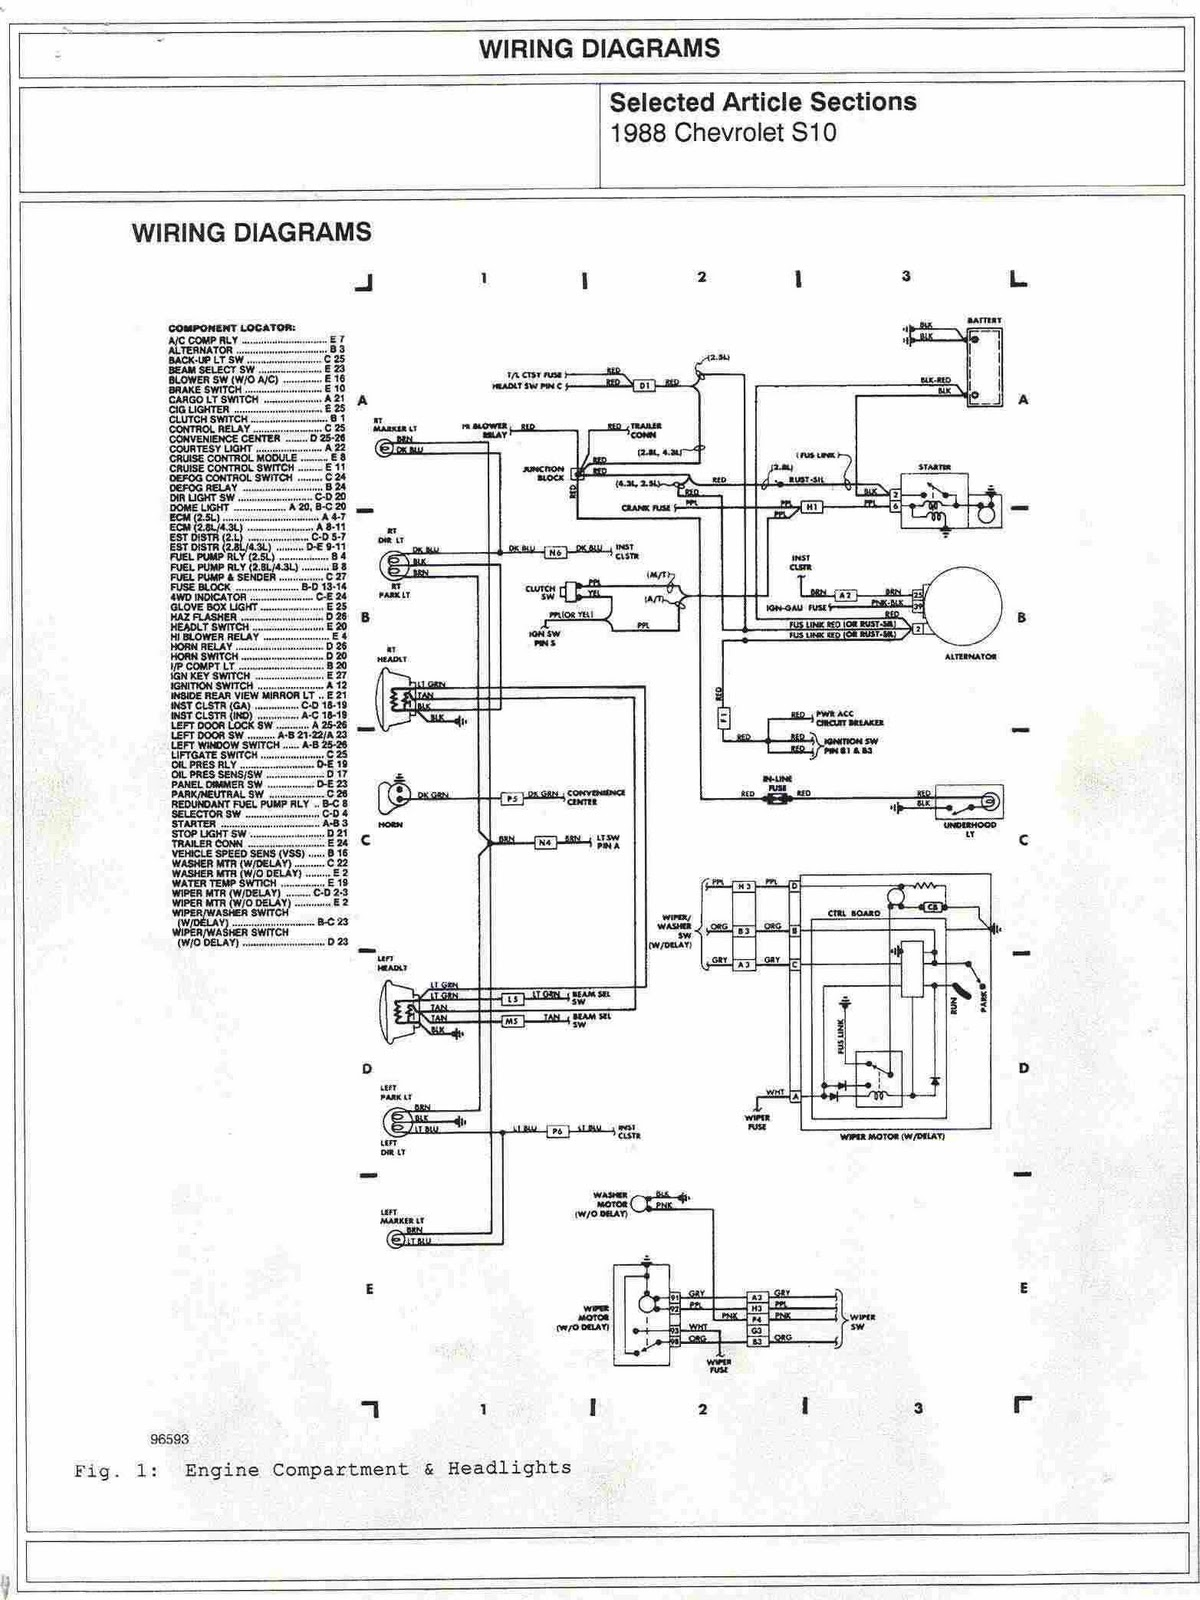 medium resolution of 1988 s10 wiring diagram wiring diagram forward 1988 chevy s10 steering column wiring diagram 1988 s10 wiring diagram